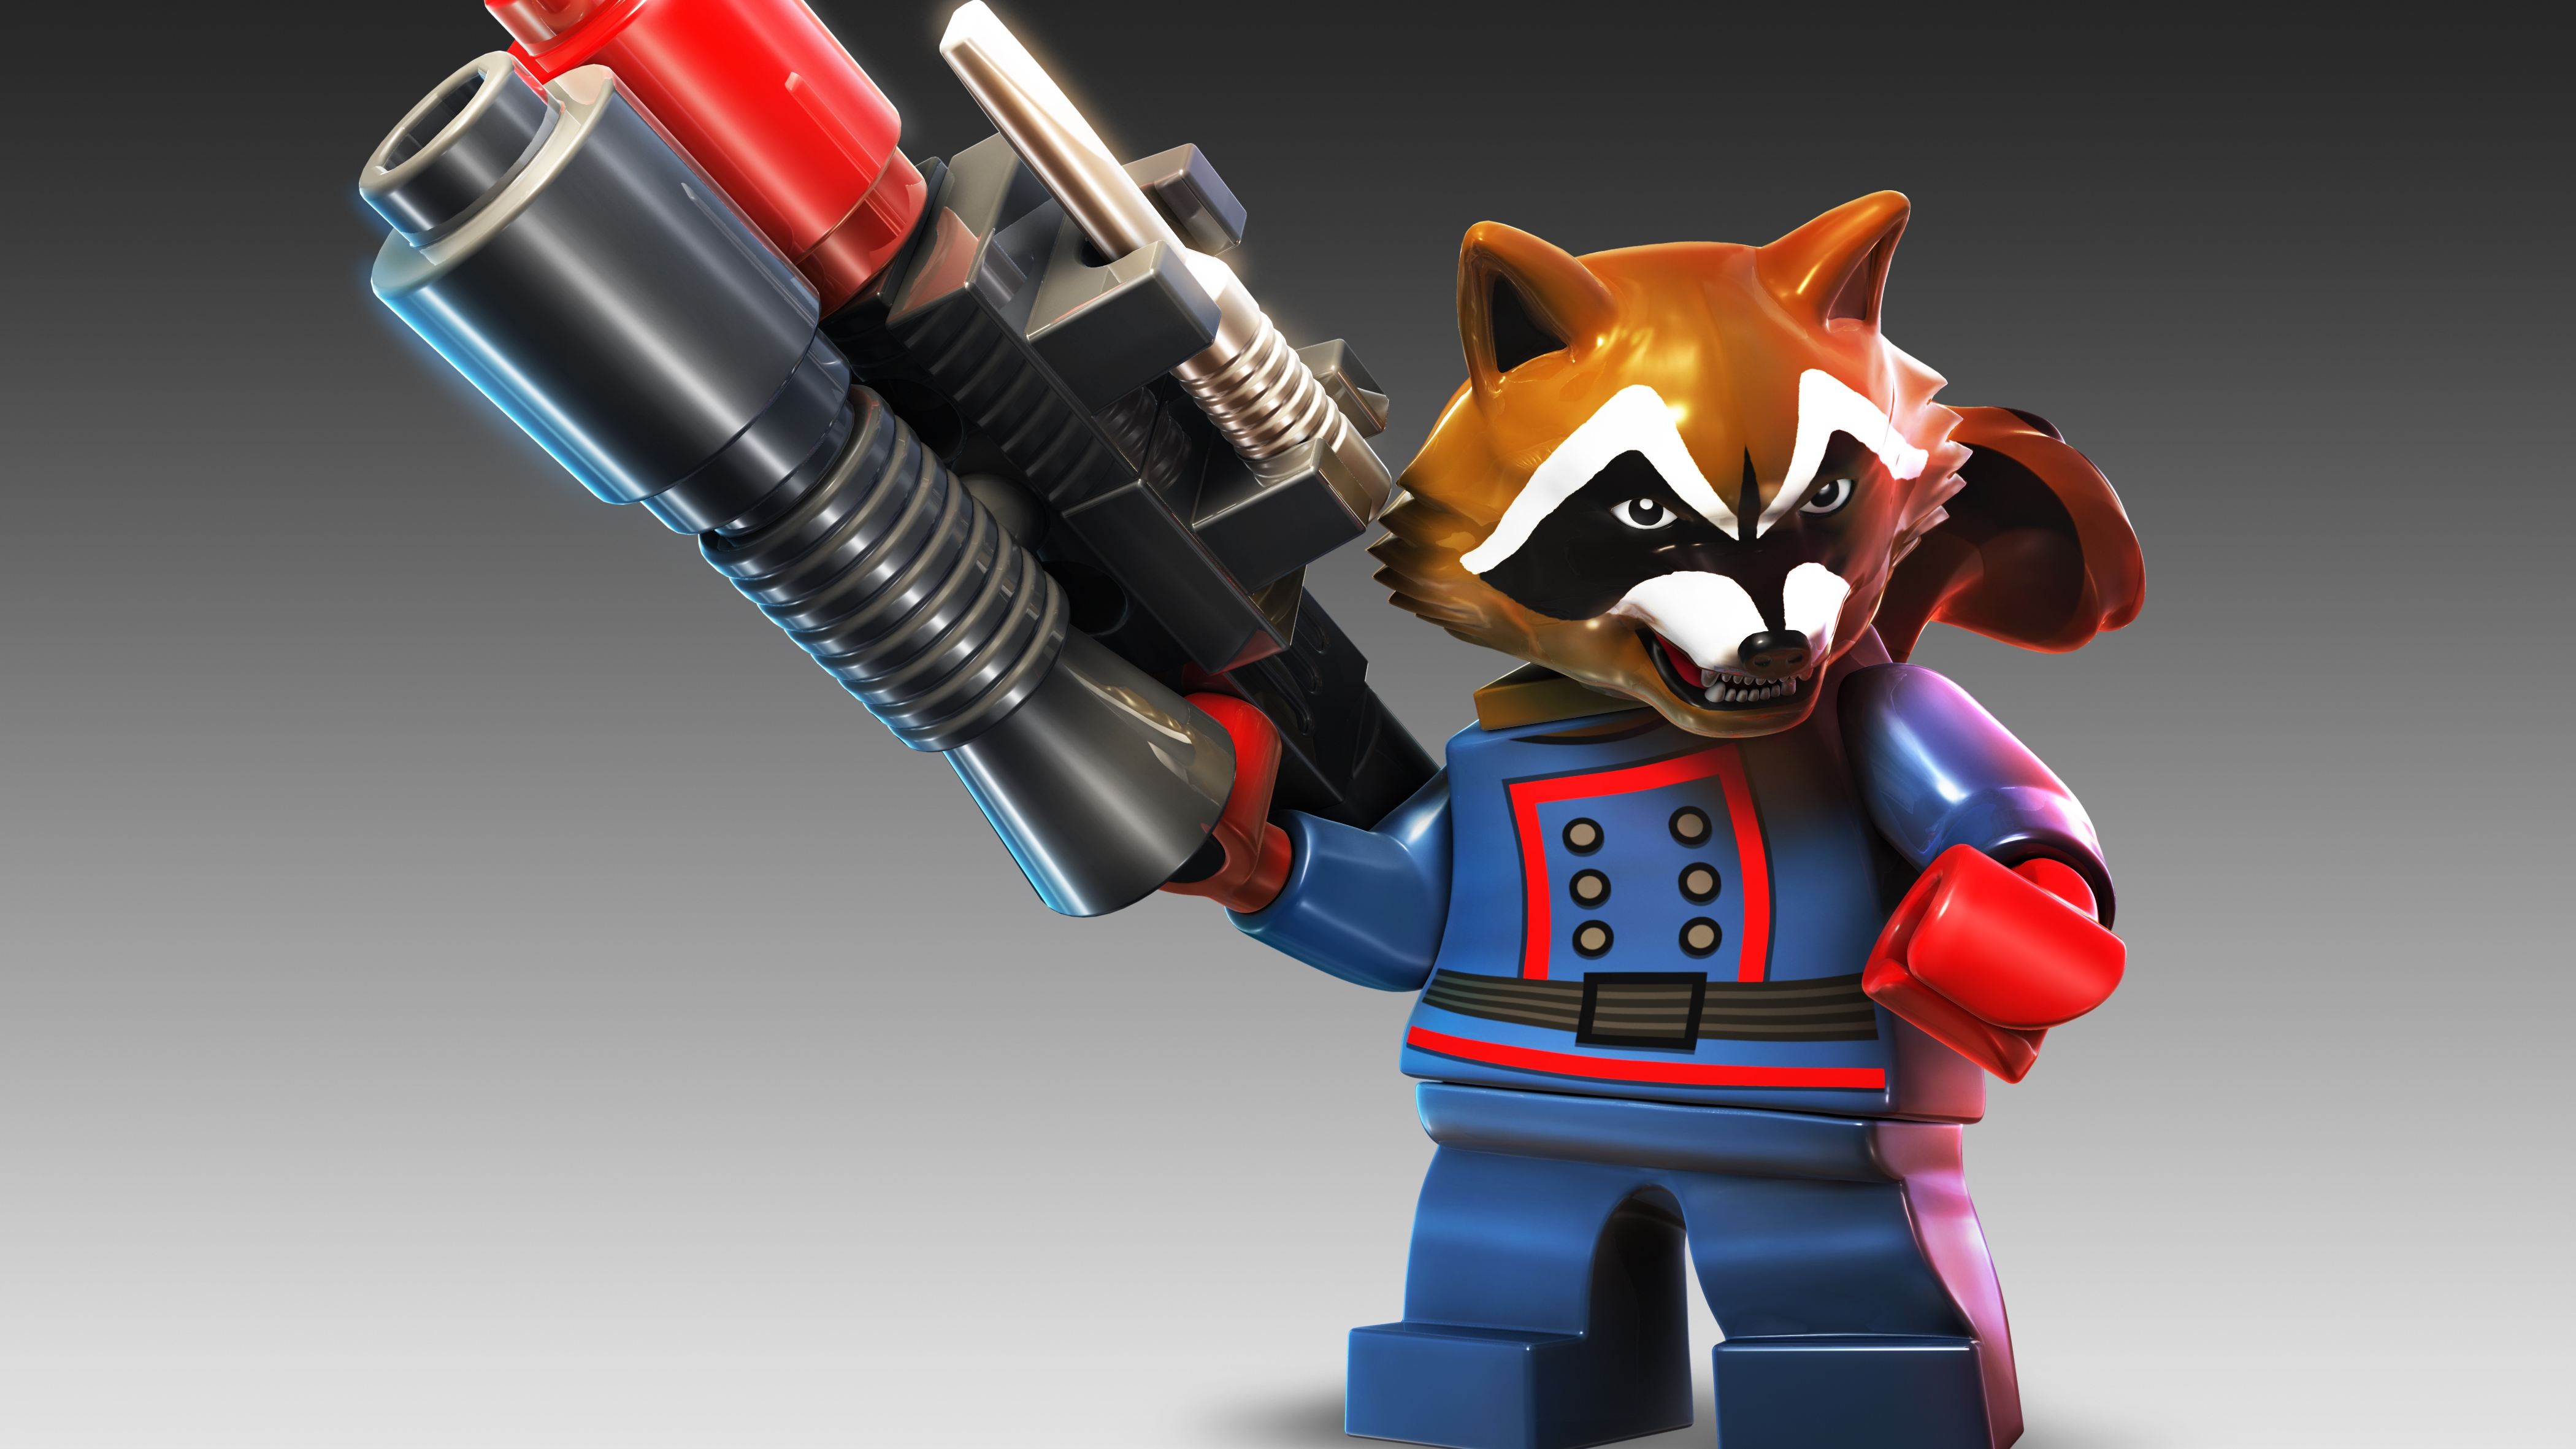 lego marvel wallpaper for desktop - photo #25